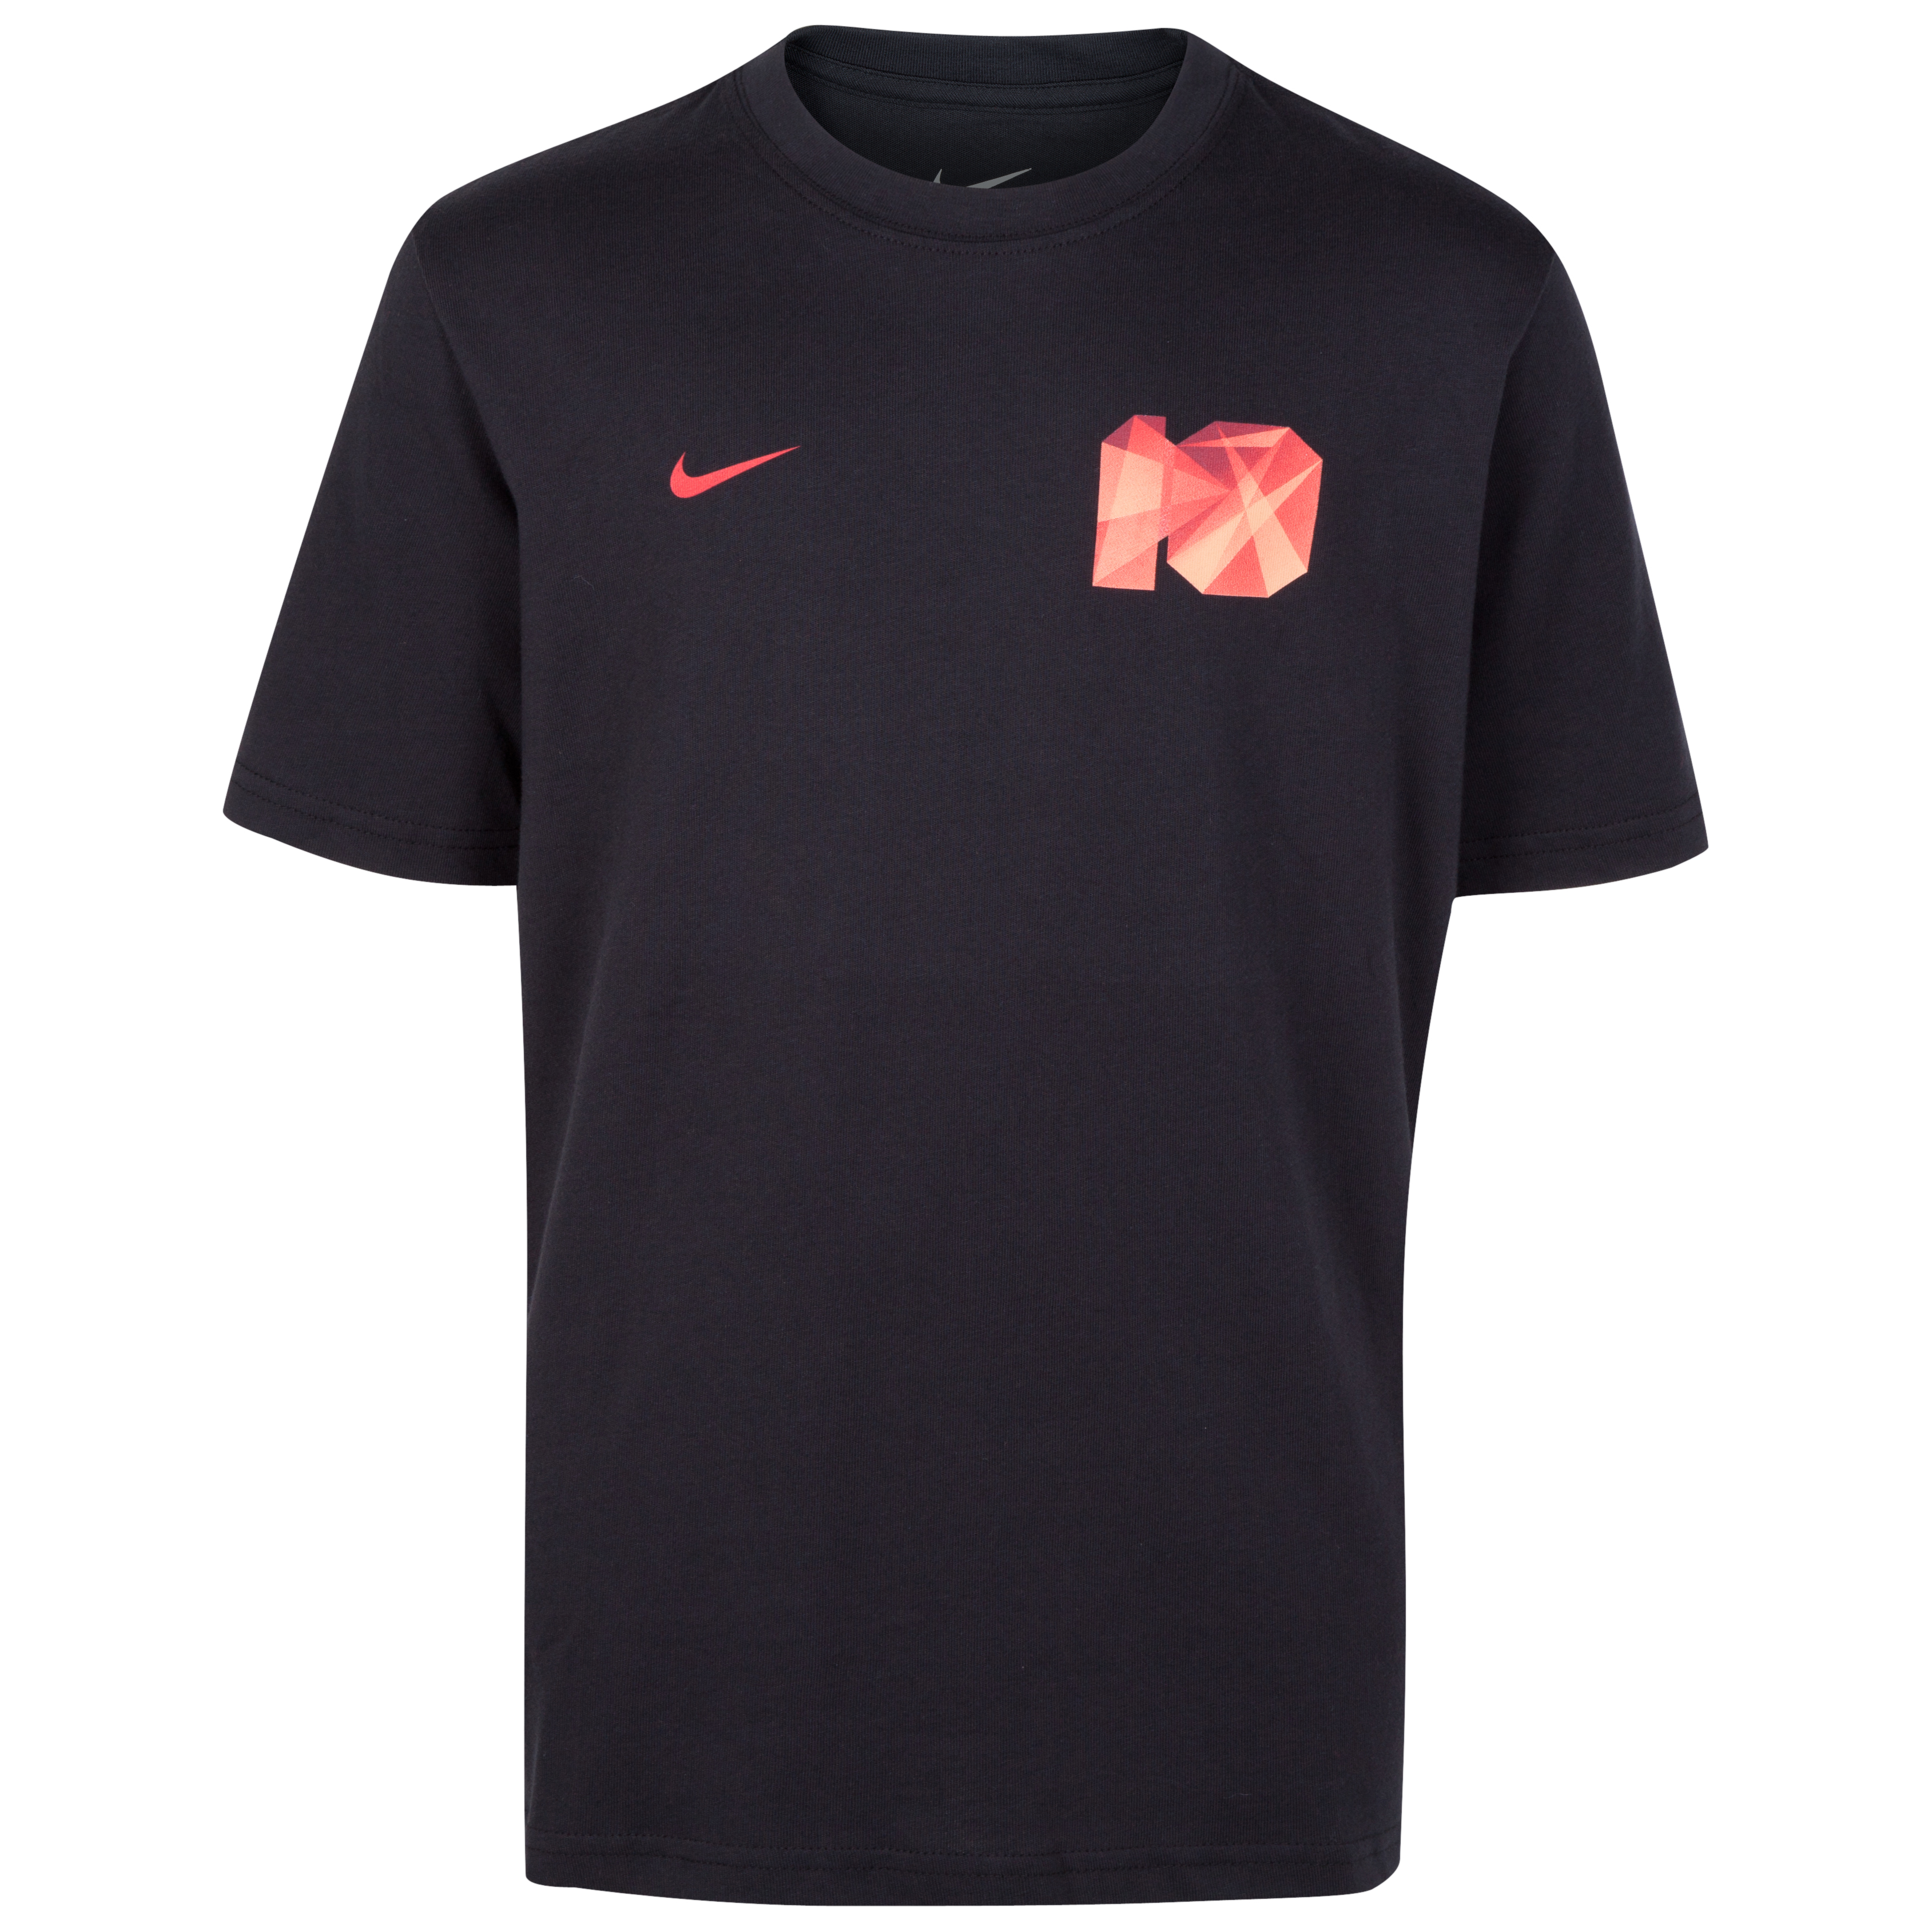 Nike Rooney Core Plus T-Shirt - Black - Youths